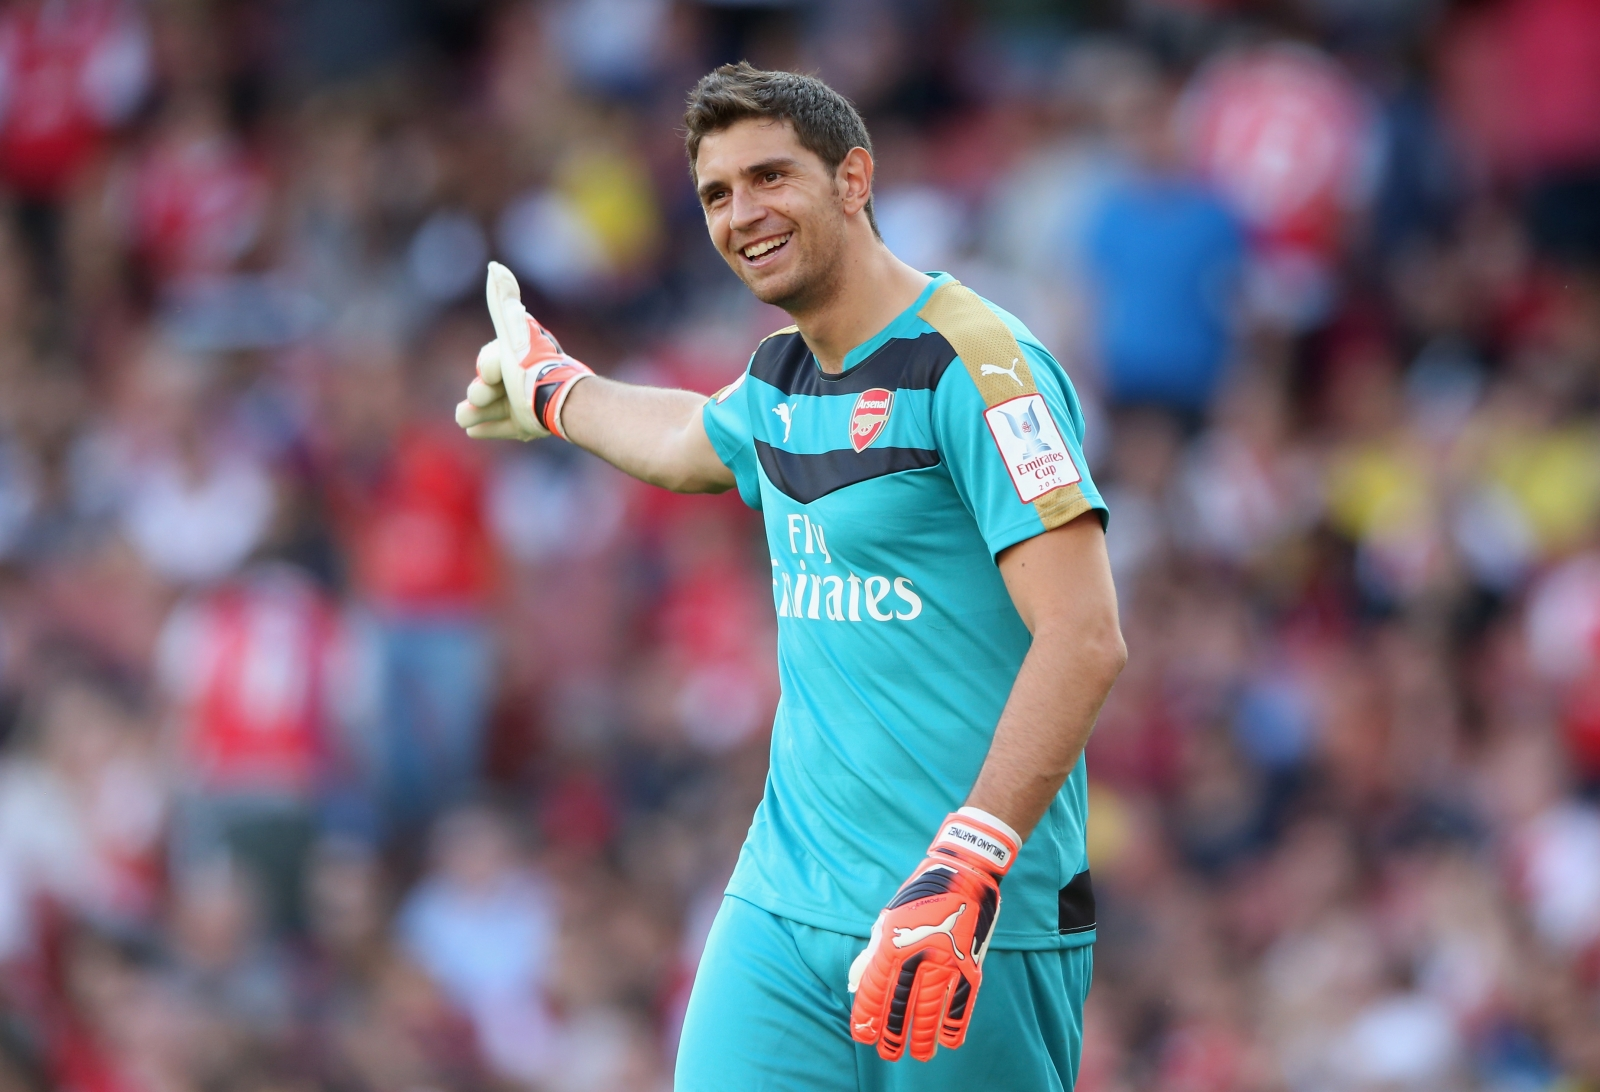 Emiliano Martínez Wallpaper: Arsenal Goalkeeper Emiliano Martinez Set To Join Wolves On Loan